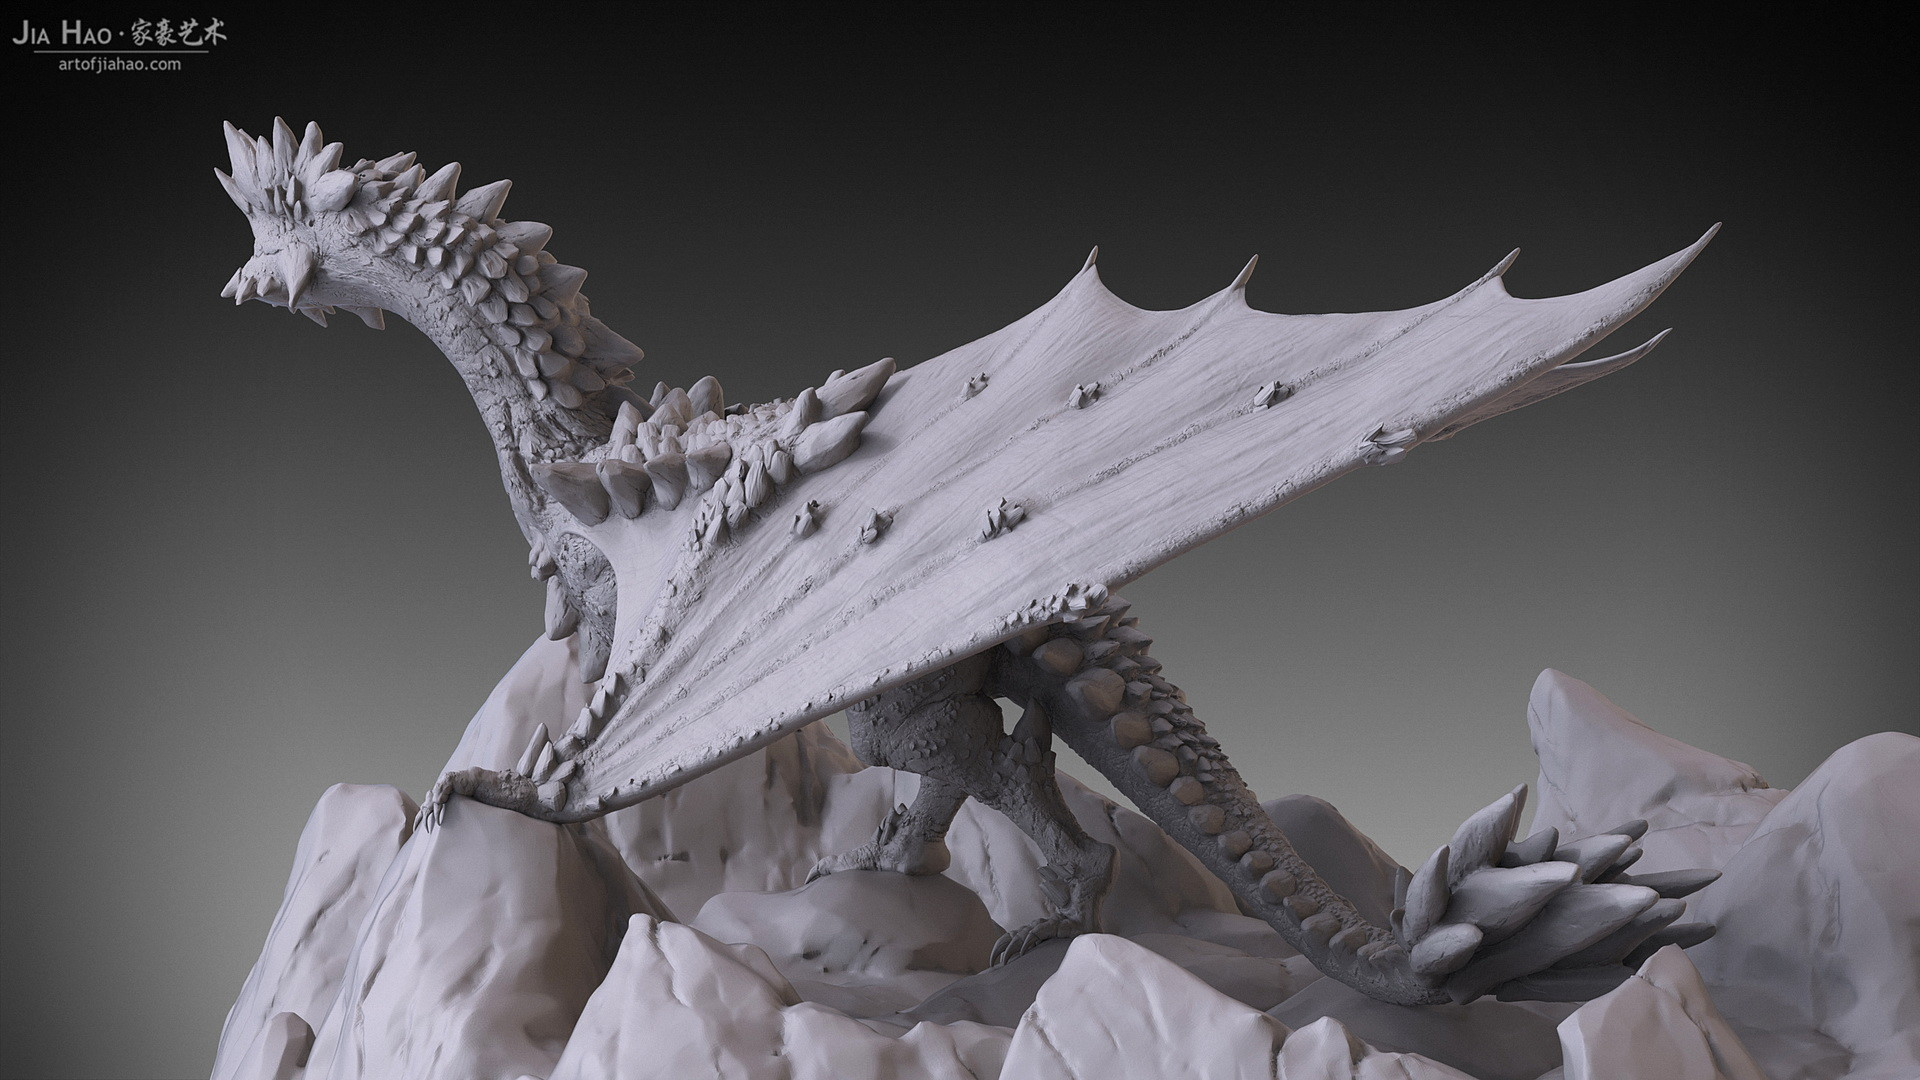 Jia hao 2017 rockdragon digitalsculpting 07